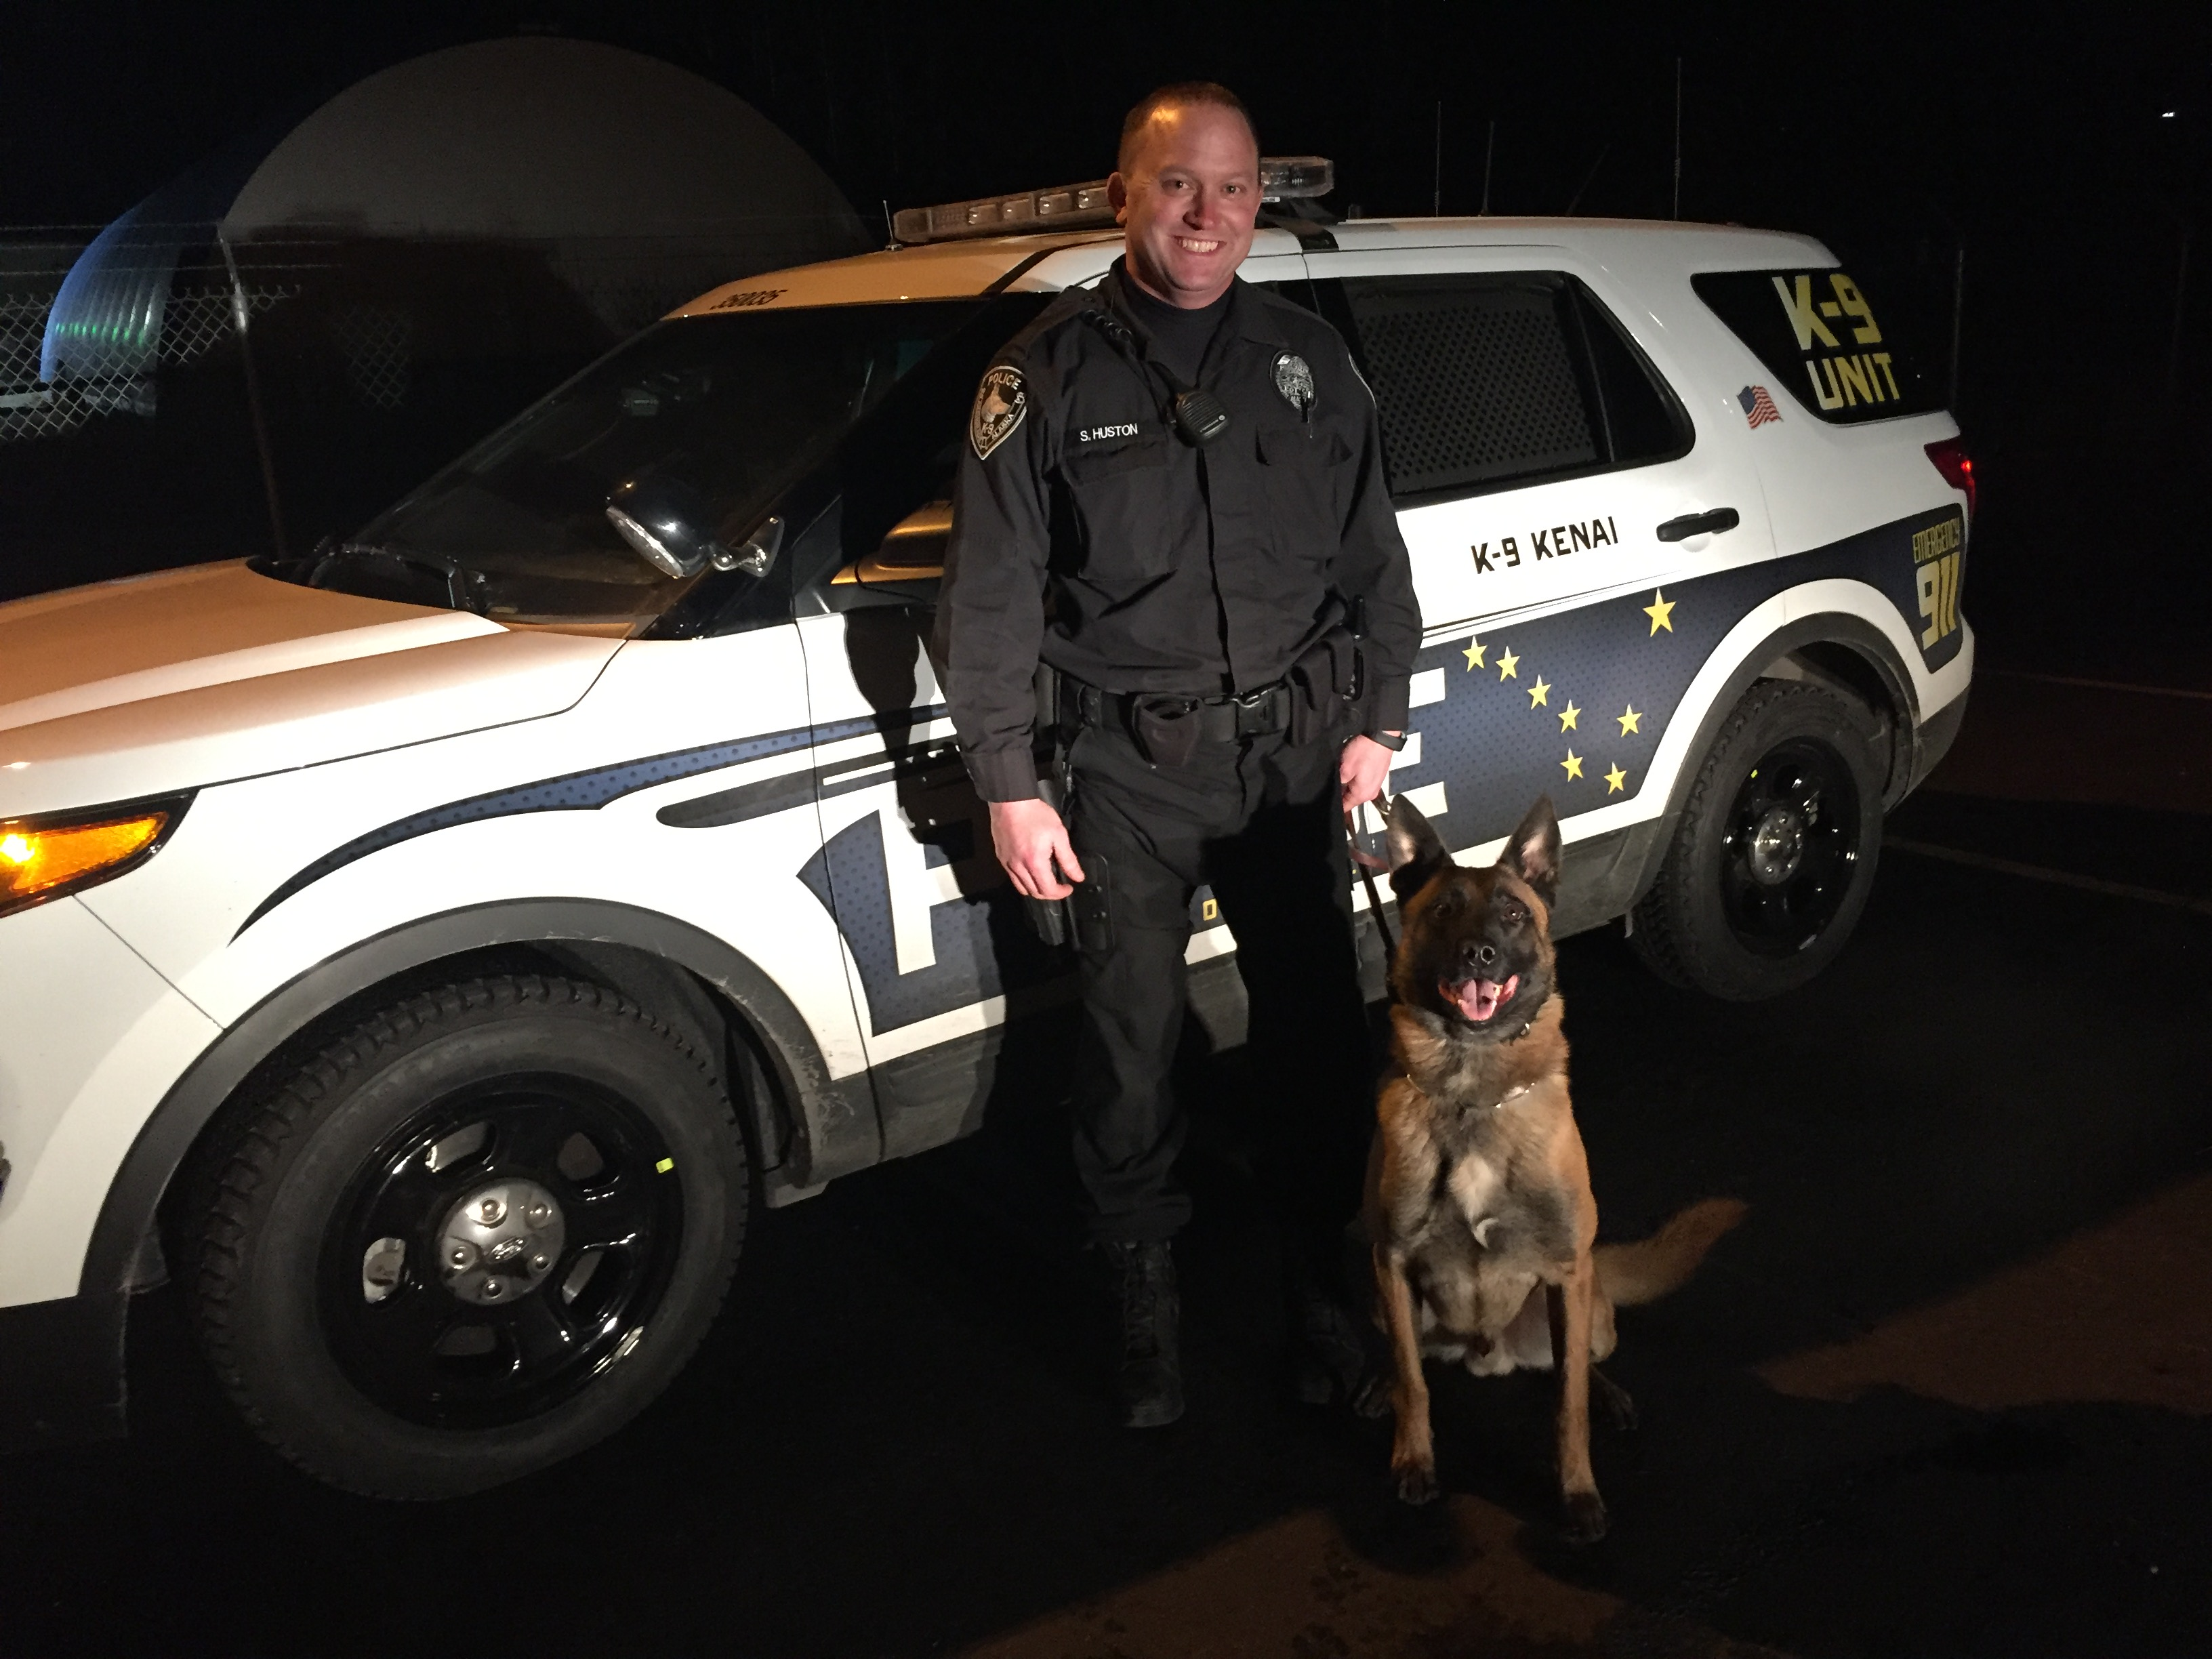 APD K 9 Nabs Man who Struck Police Vehicle & Building in Stolen Subaru